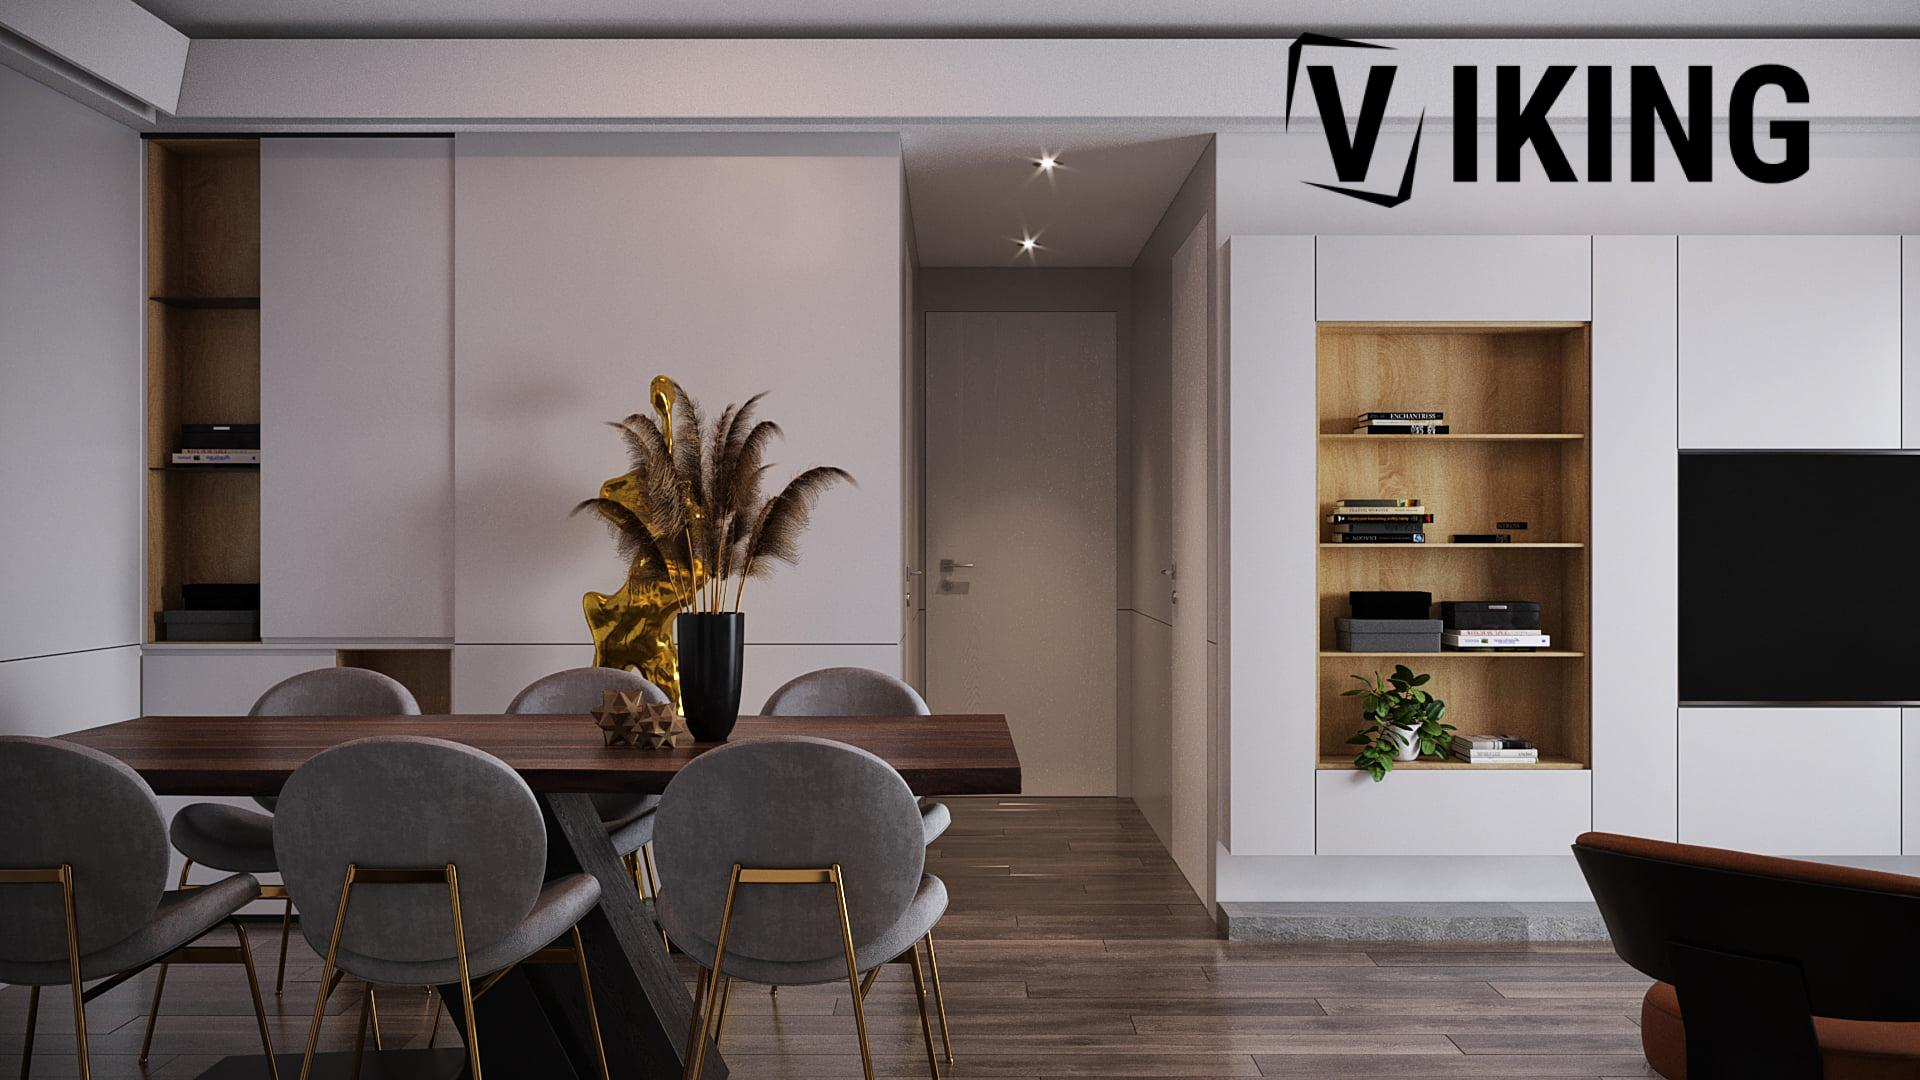 4552.Interior Apartment Scene 3dsmax File free download by Mai Long 4